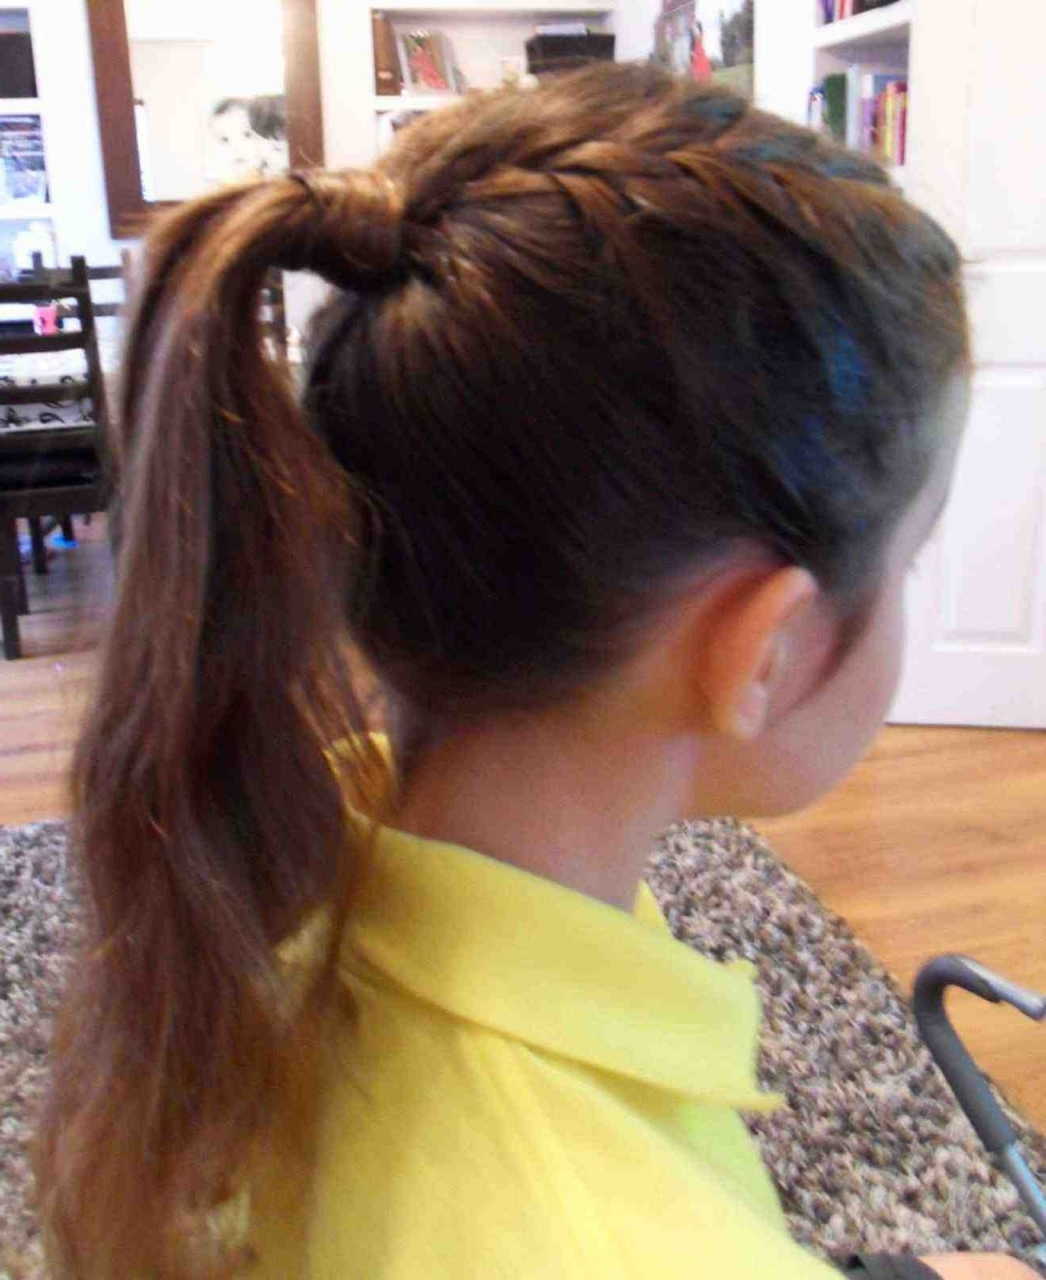 Braid Hairstyles Short Hair Inspirational Ponytail Hairstyles For In Most Popular French Braid Ponytail Hairstyles (View 4 of 20)